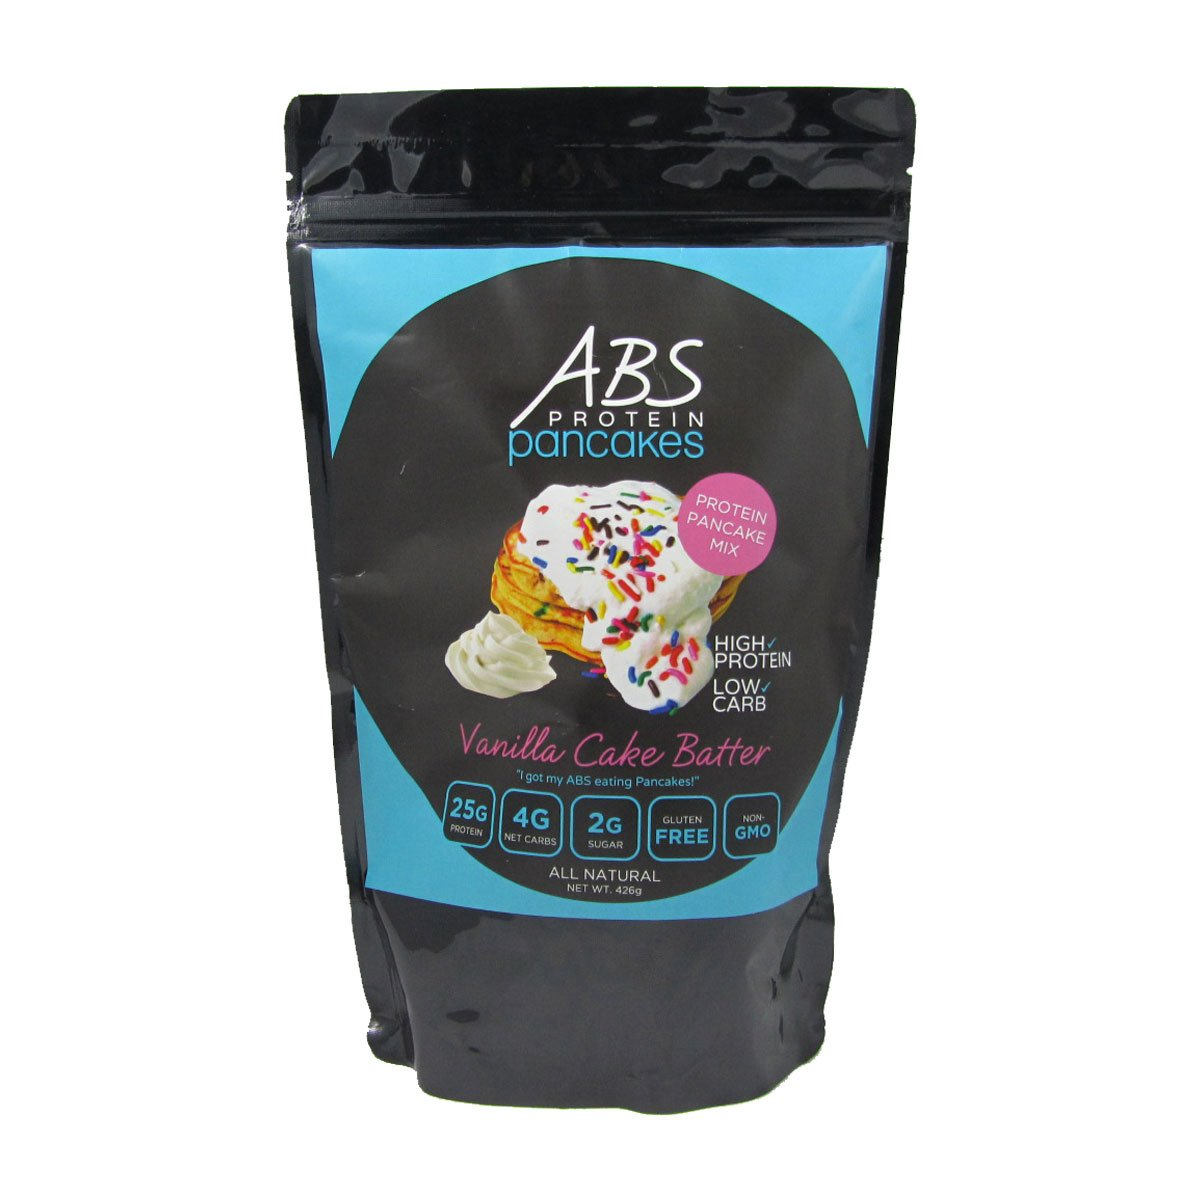 Protein Pancake Mix - Vanilla Cake Batter - ABS Protein Pancakes and Waffles - Gluten Free, Keto Friendly Protein Powder Mix - High Protein, Low Carb, Low Sugar - 1 Pound Package ($2.50/Ounce) by ABS Protein Pancakes